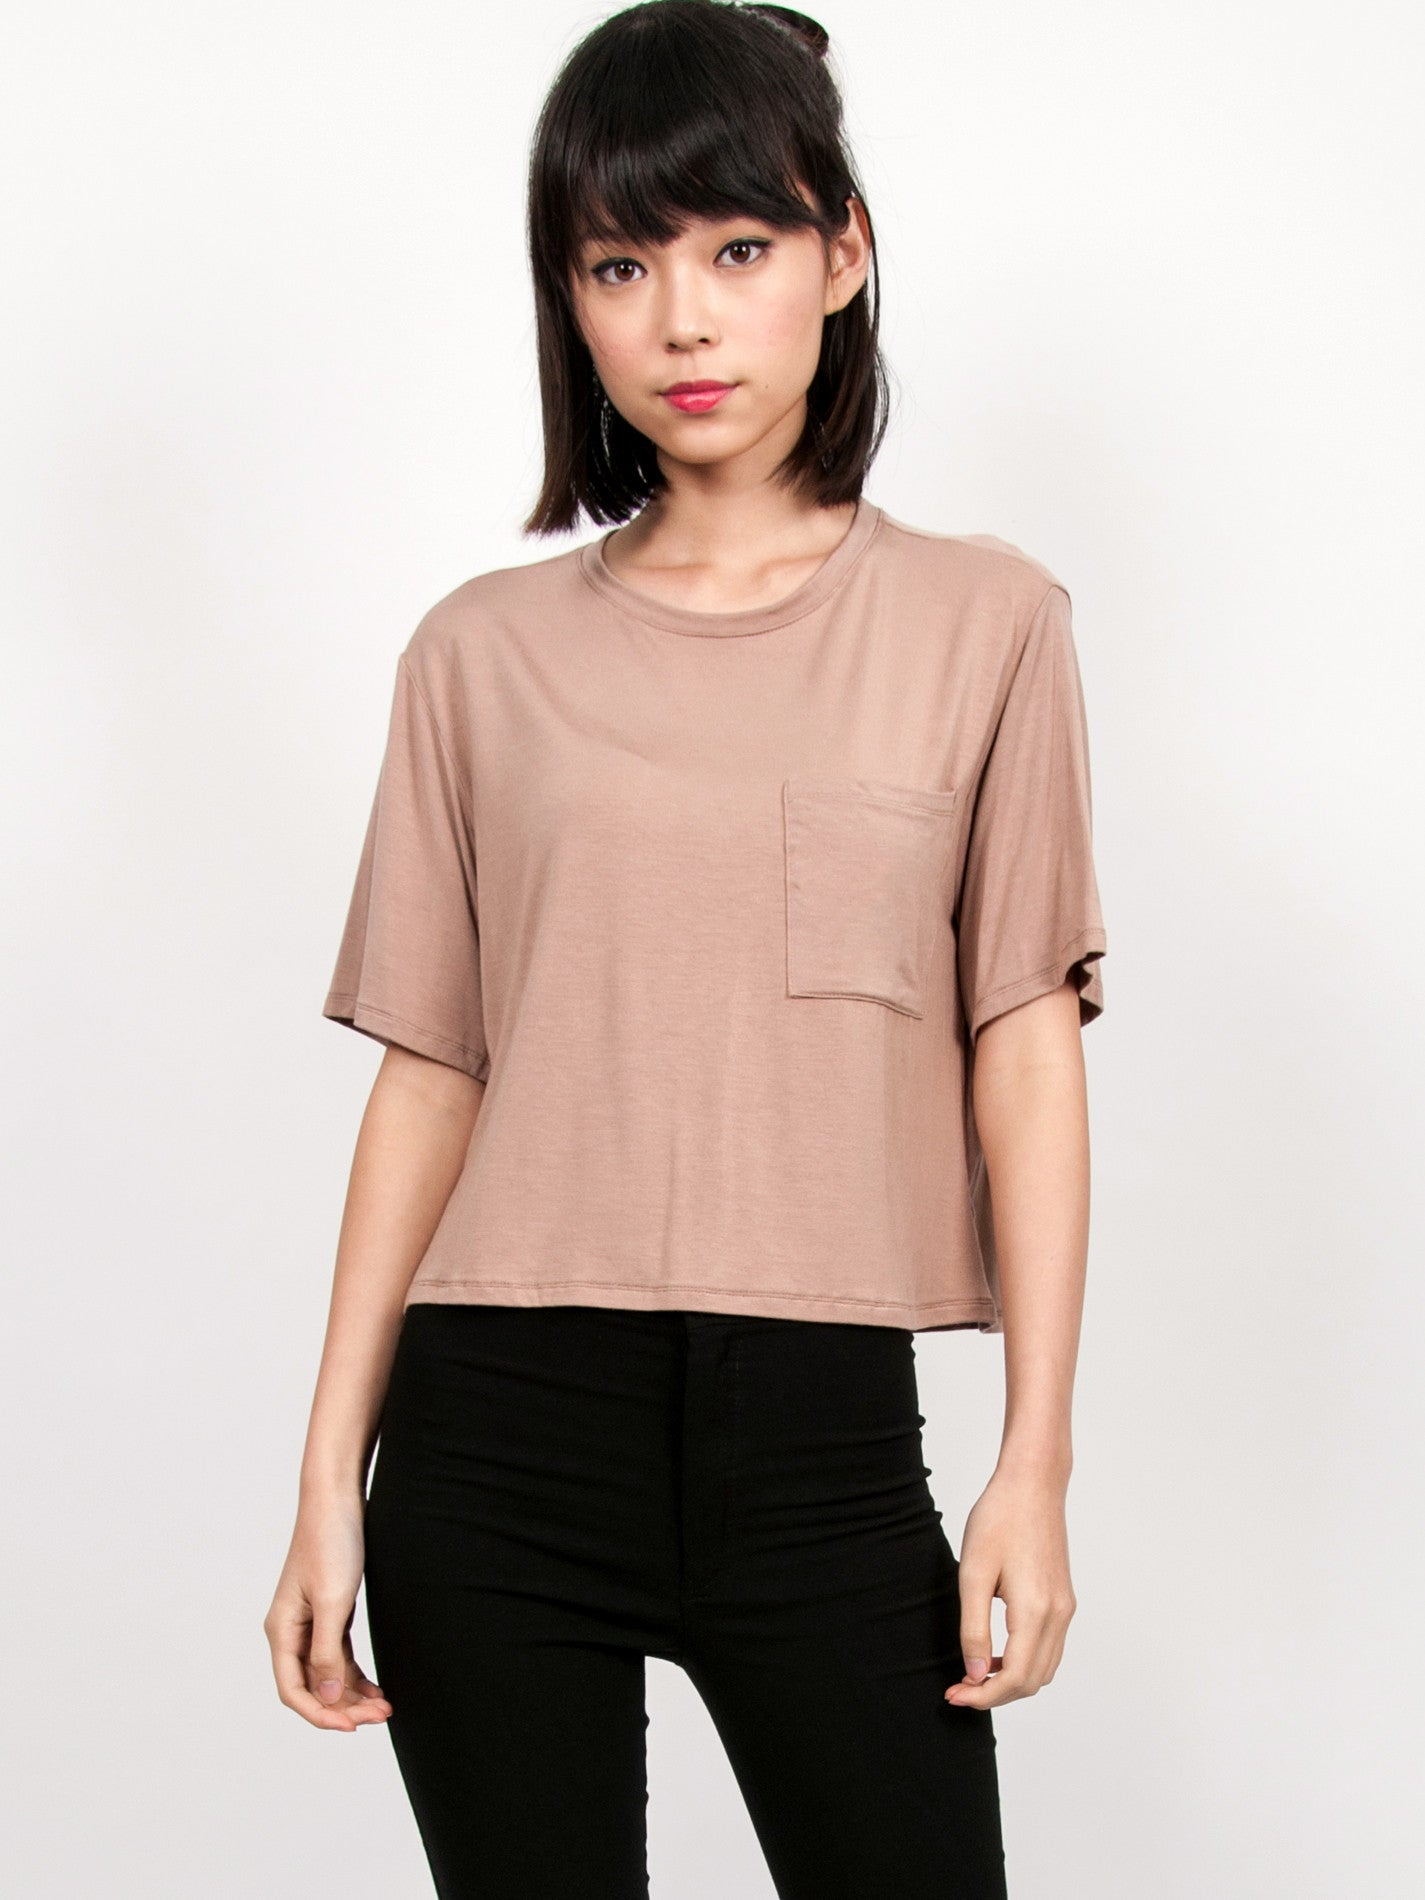 MADDIE Slouchy Pocket Tee (Neutral)